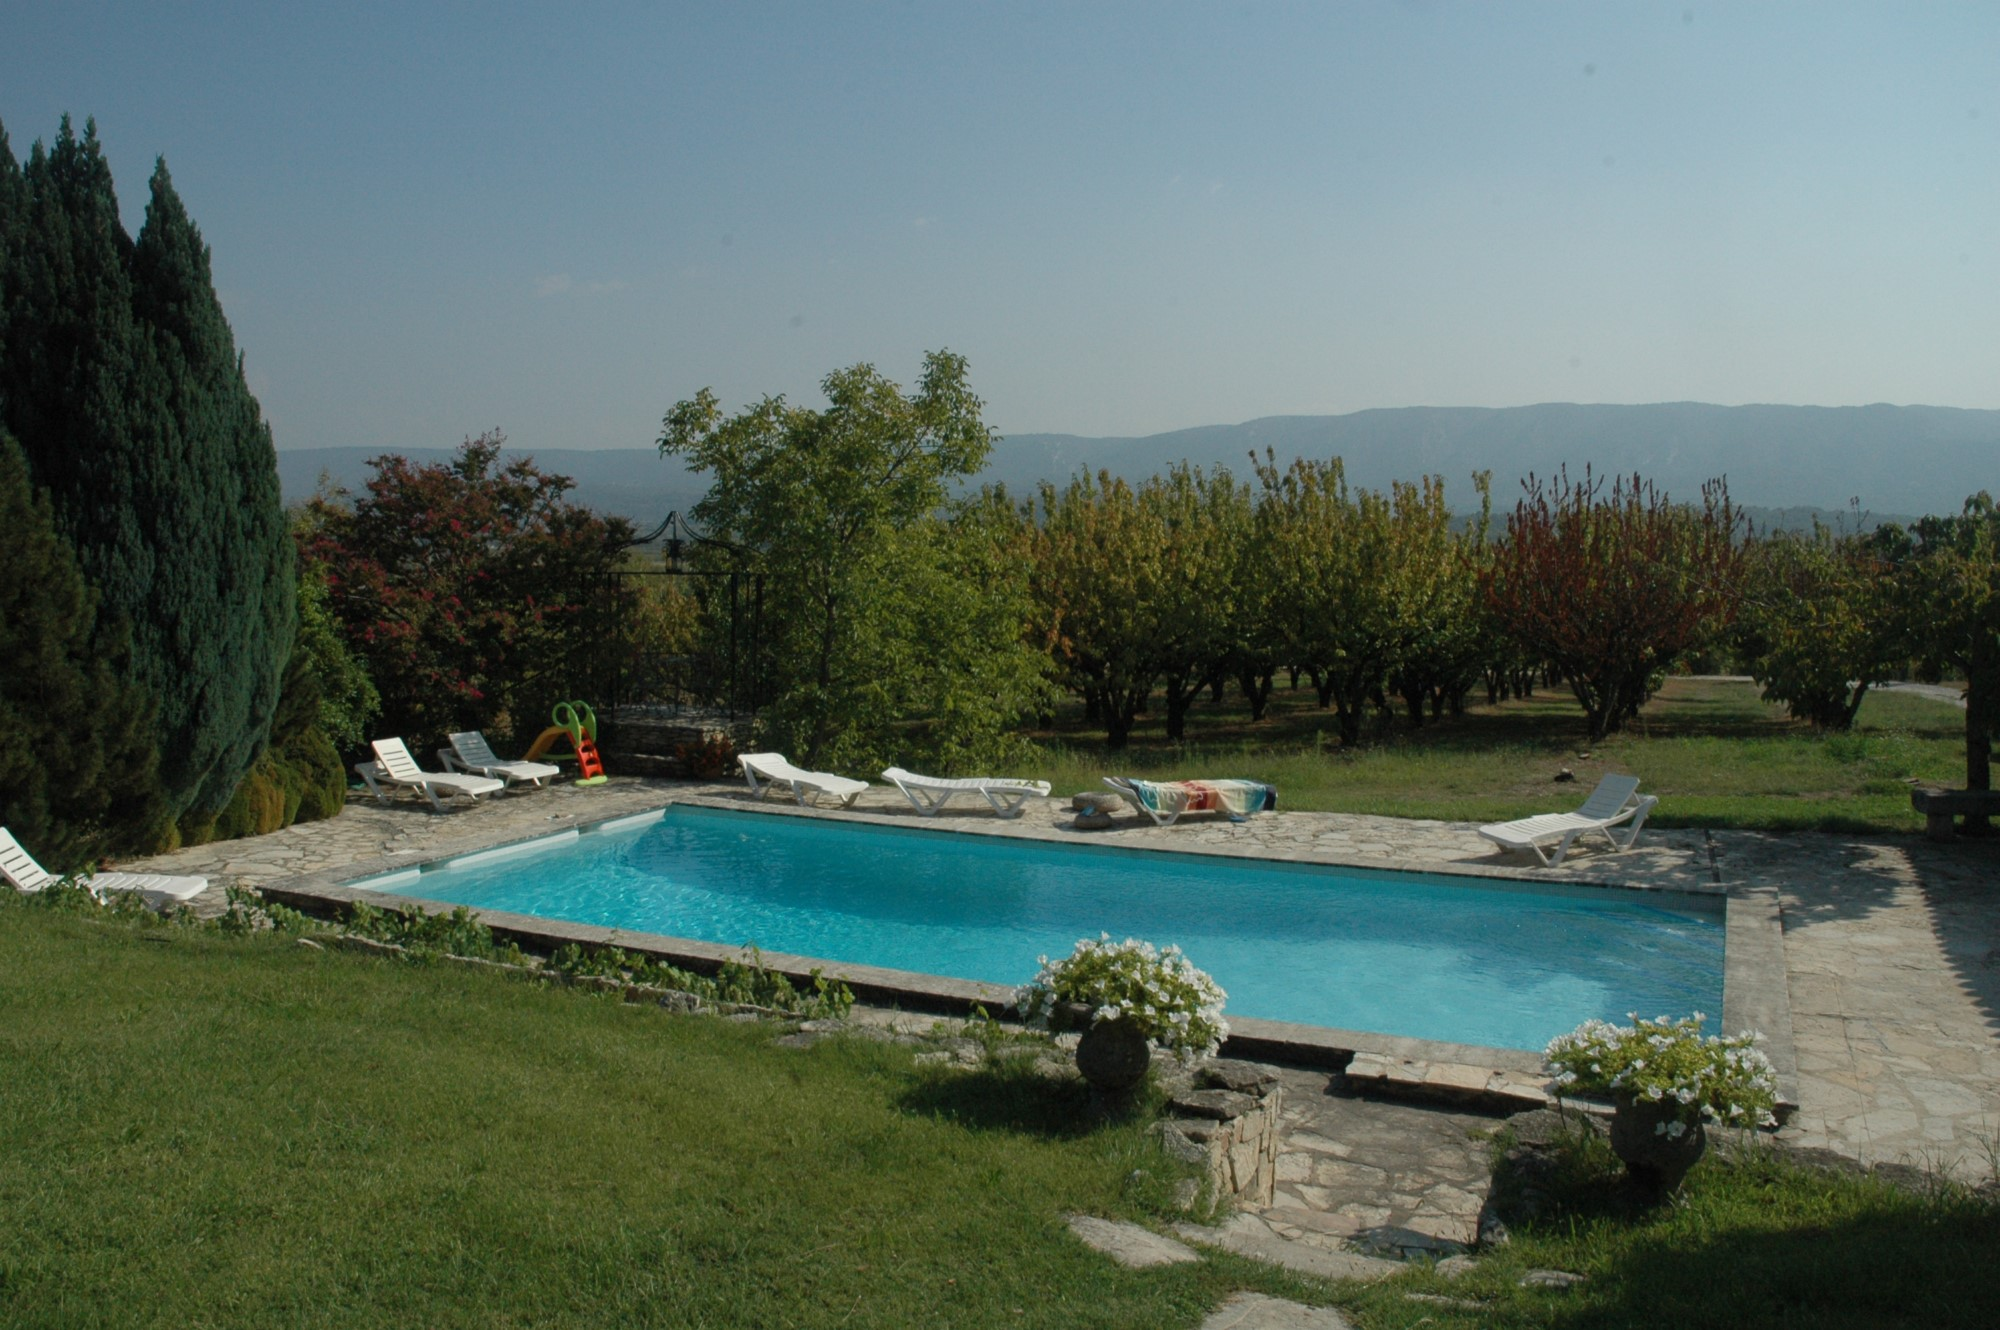 Camping luberon avec piscine camping luberon bergerie for Camping dans le limousin avec piscine